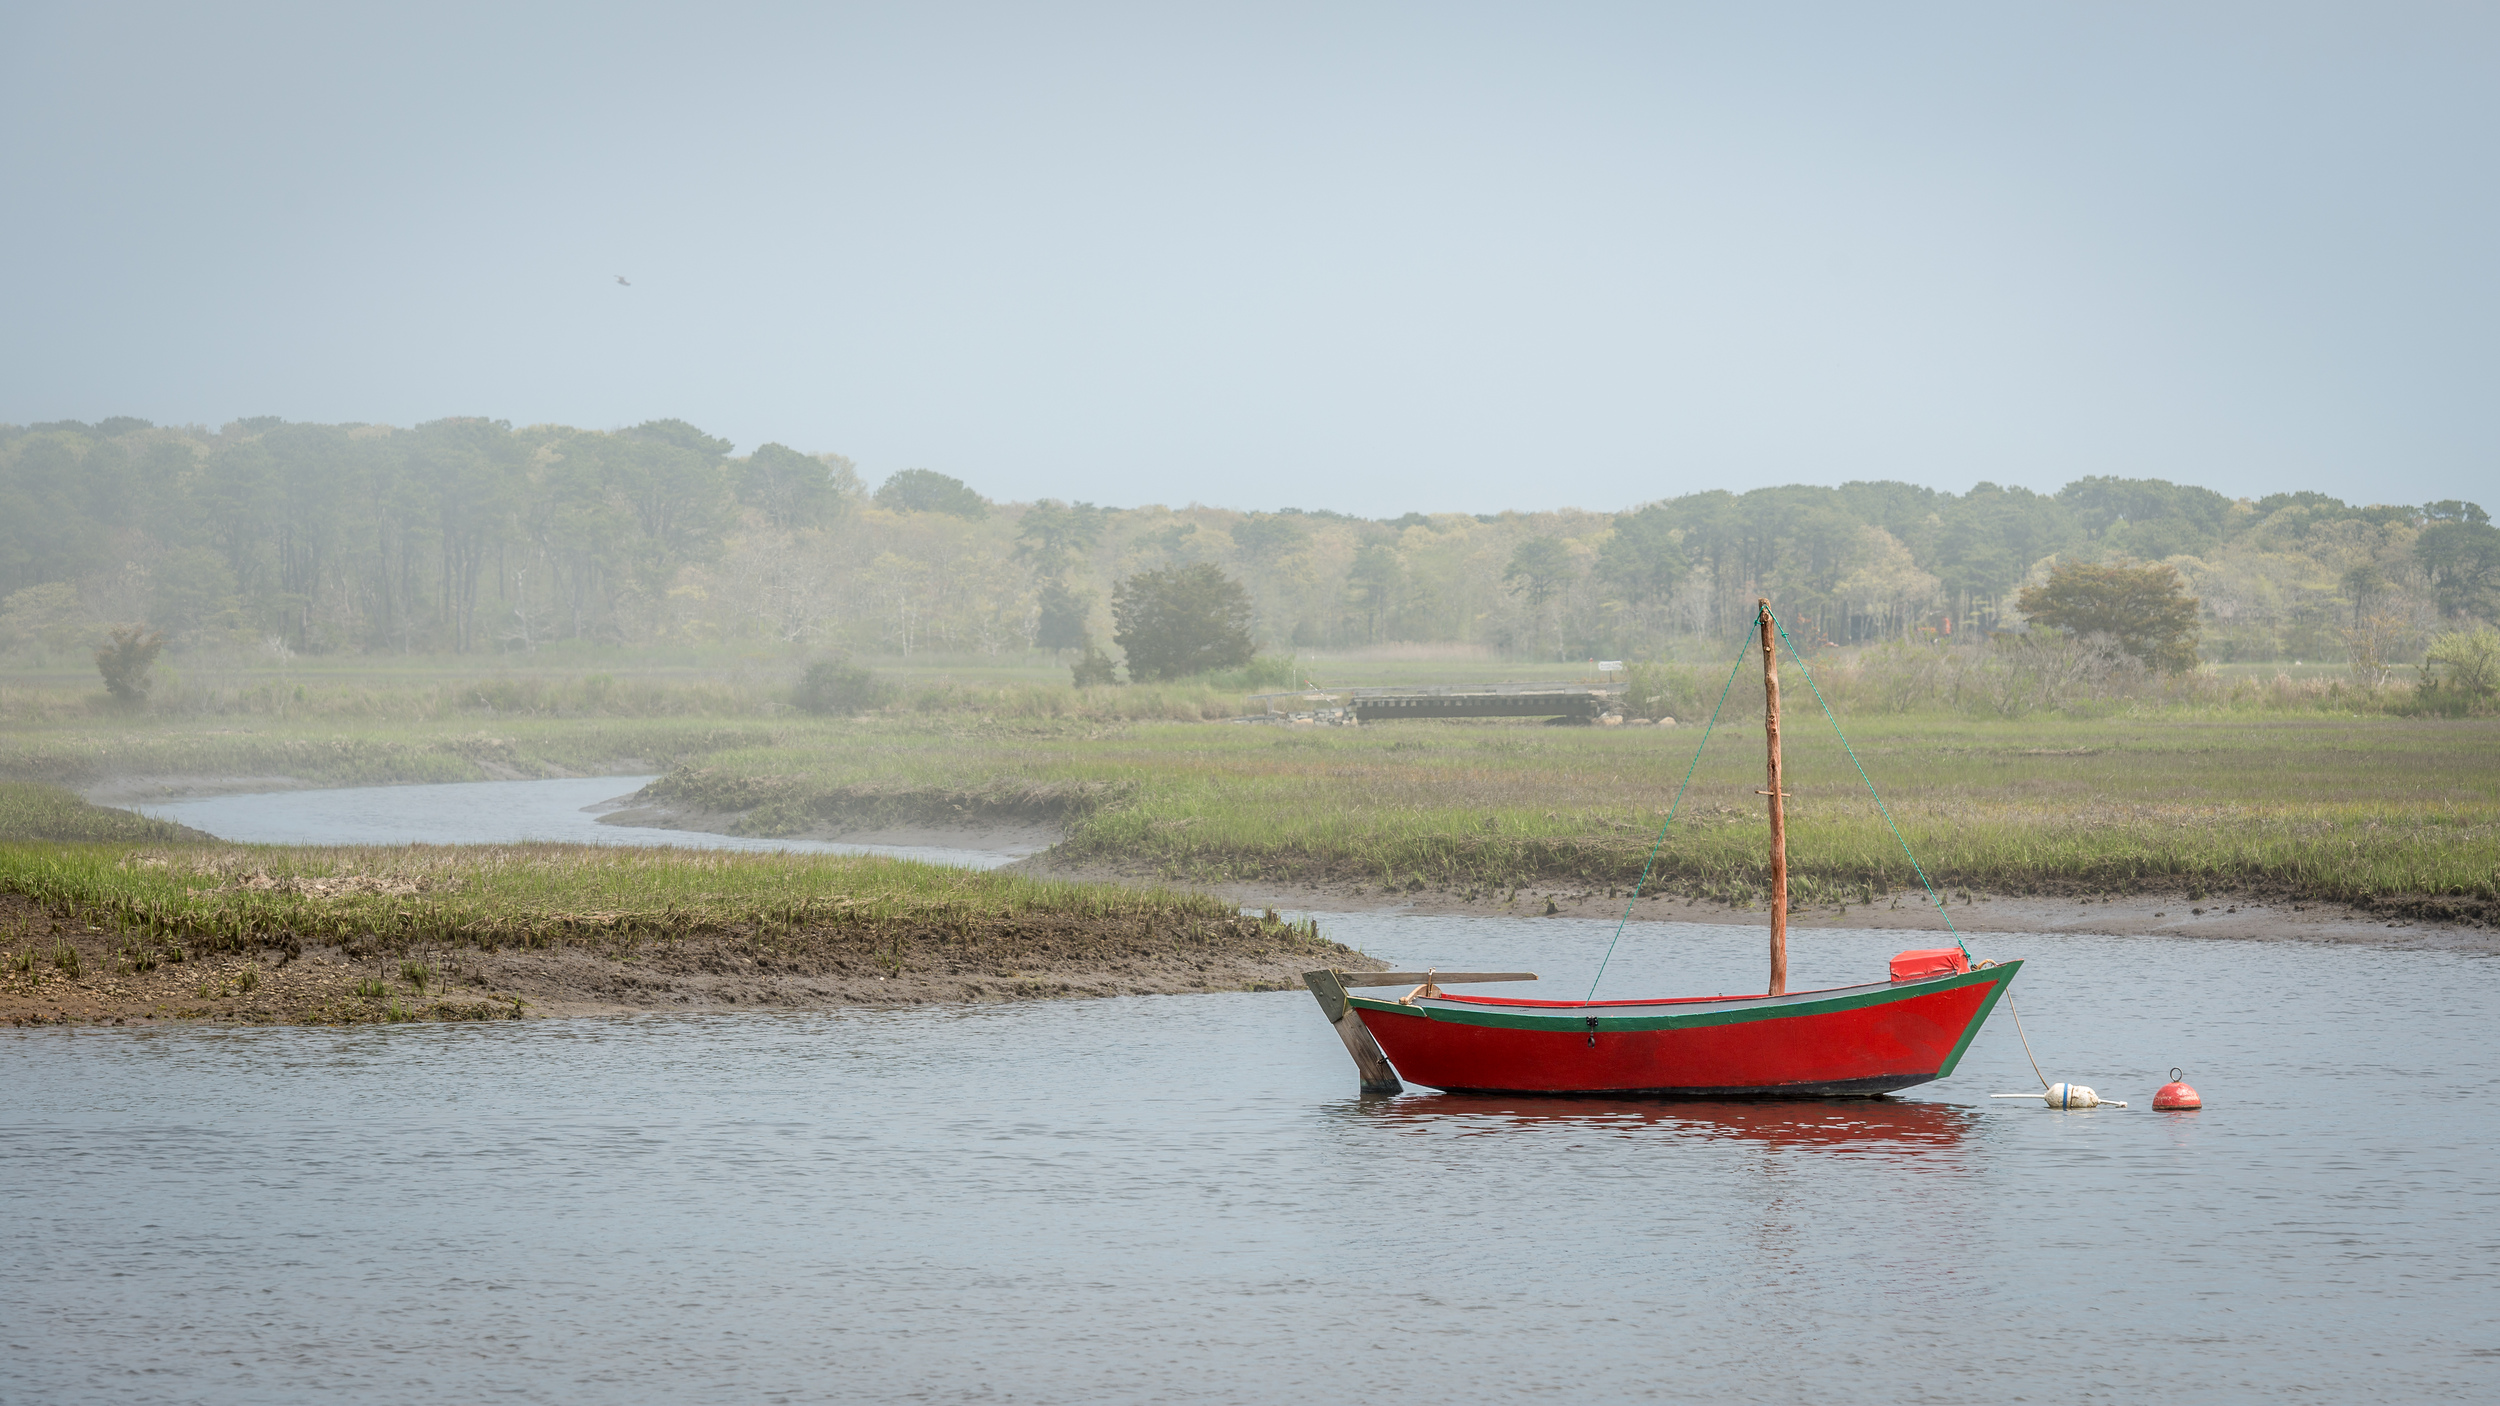 Red Boat on The Herring River